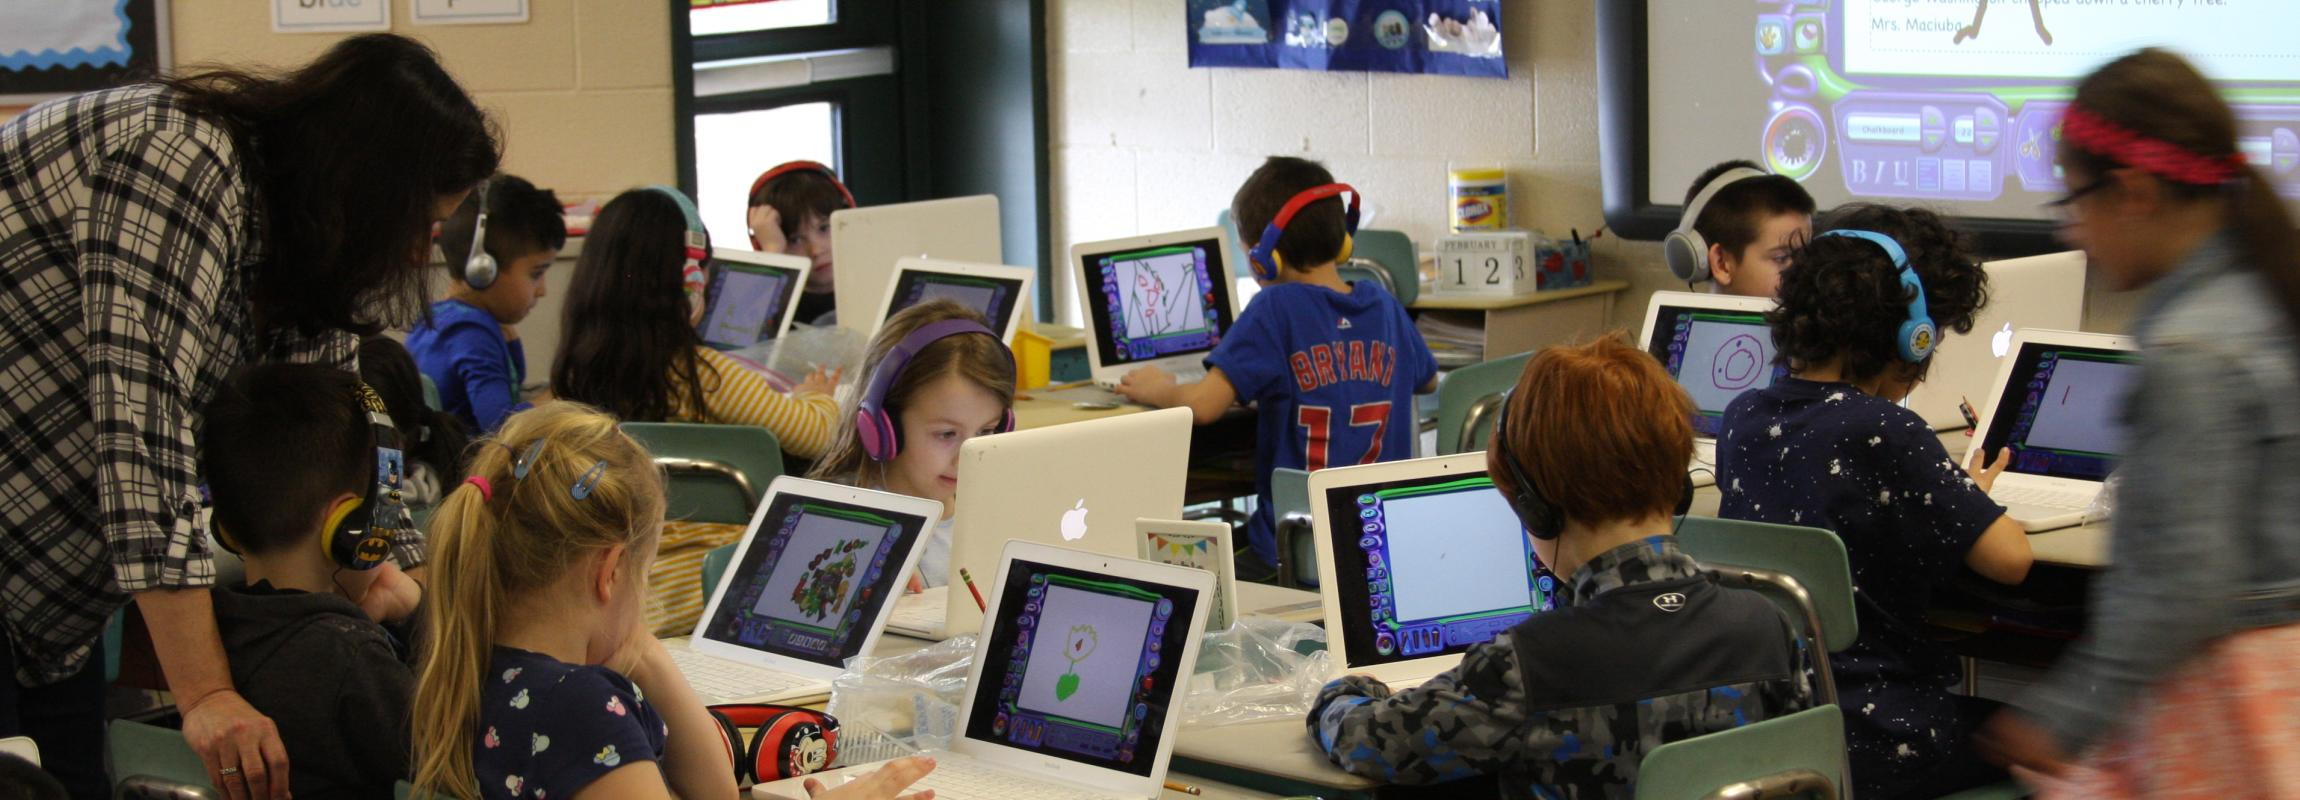 Students drawing on computer